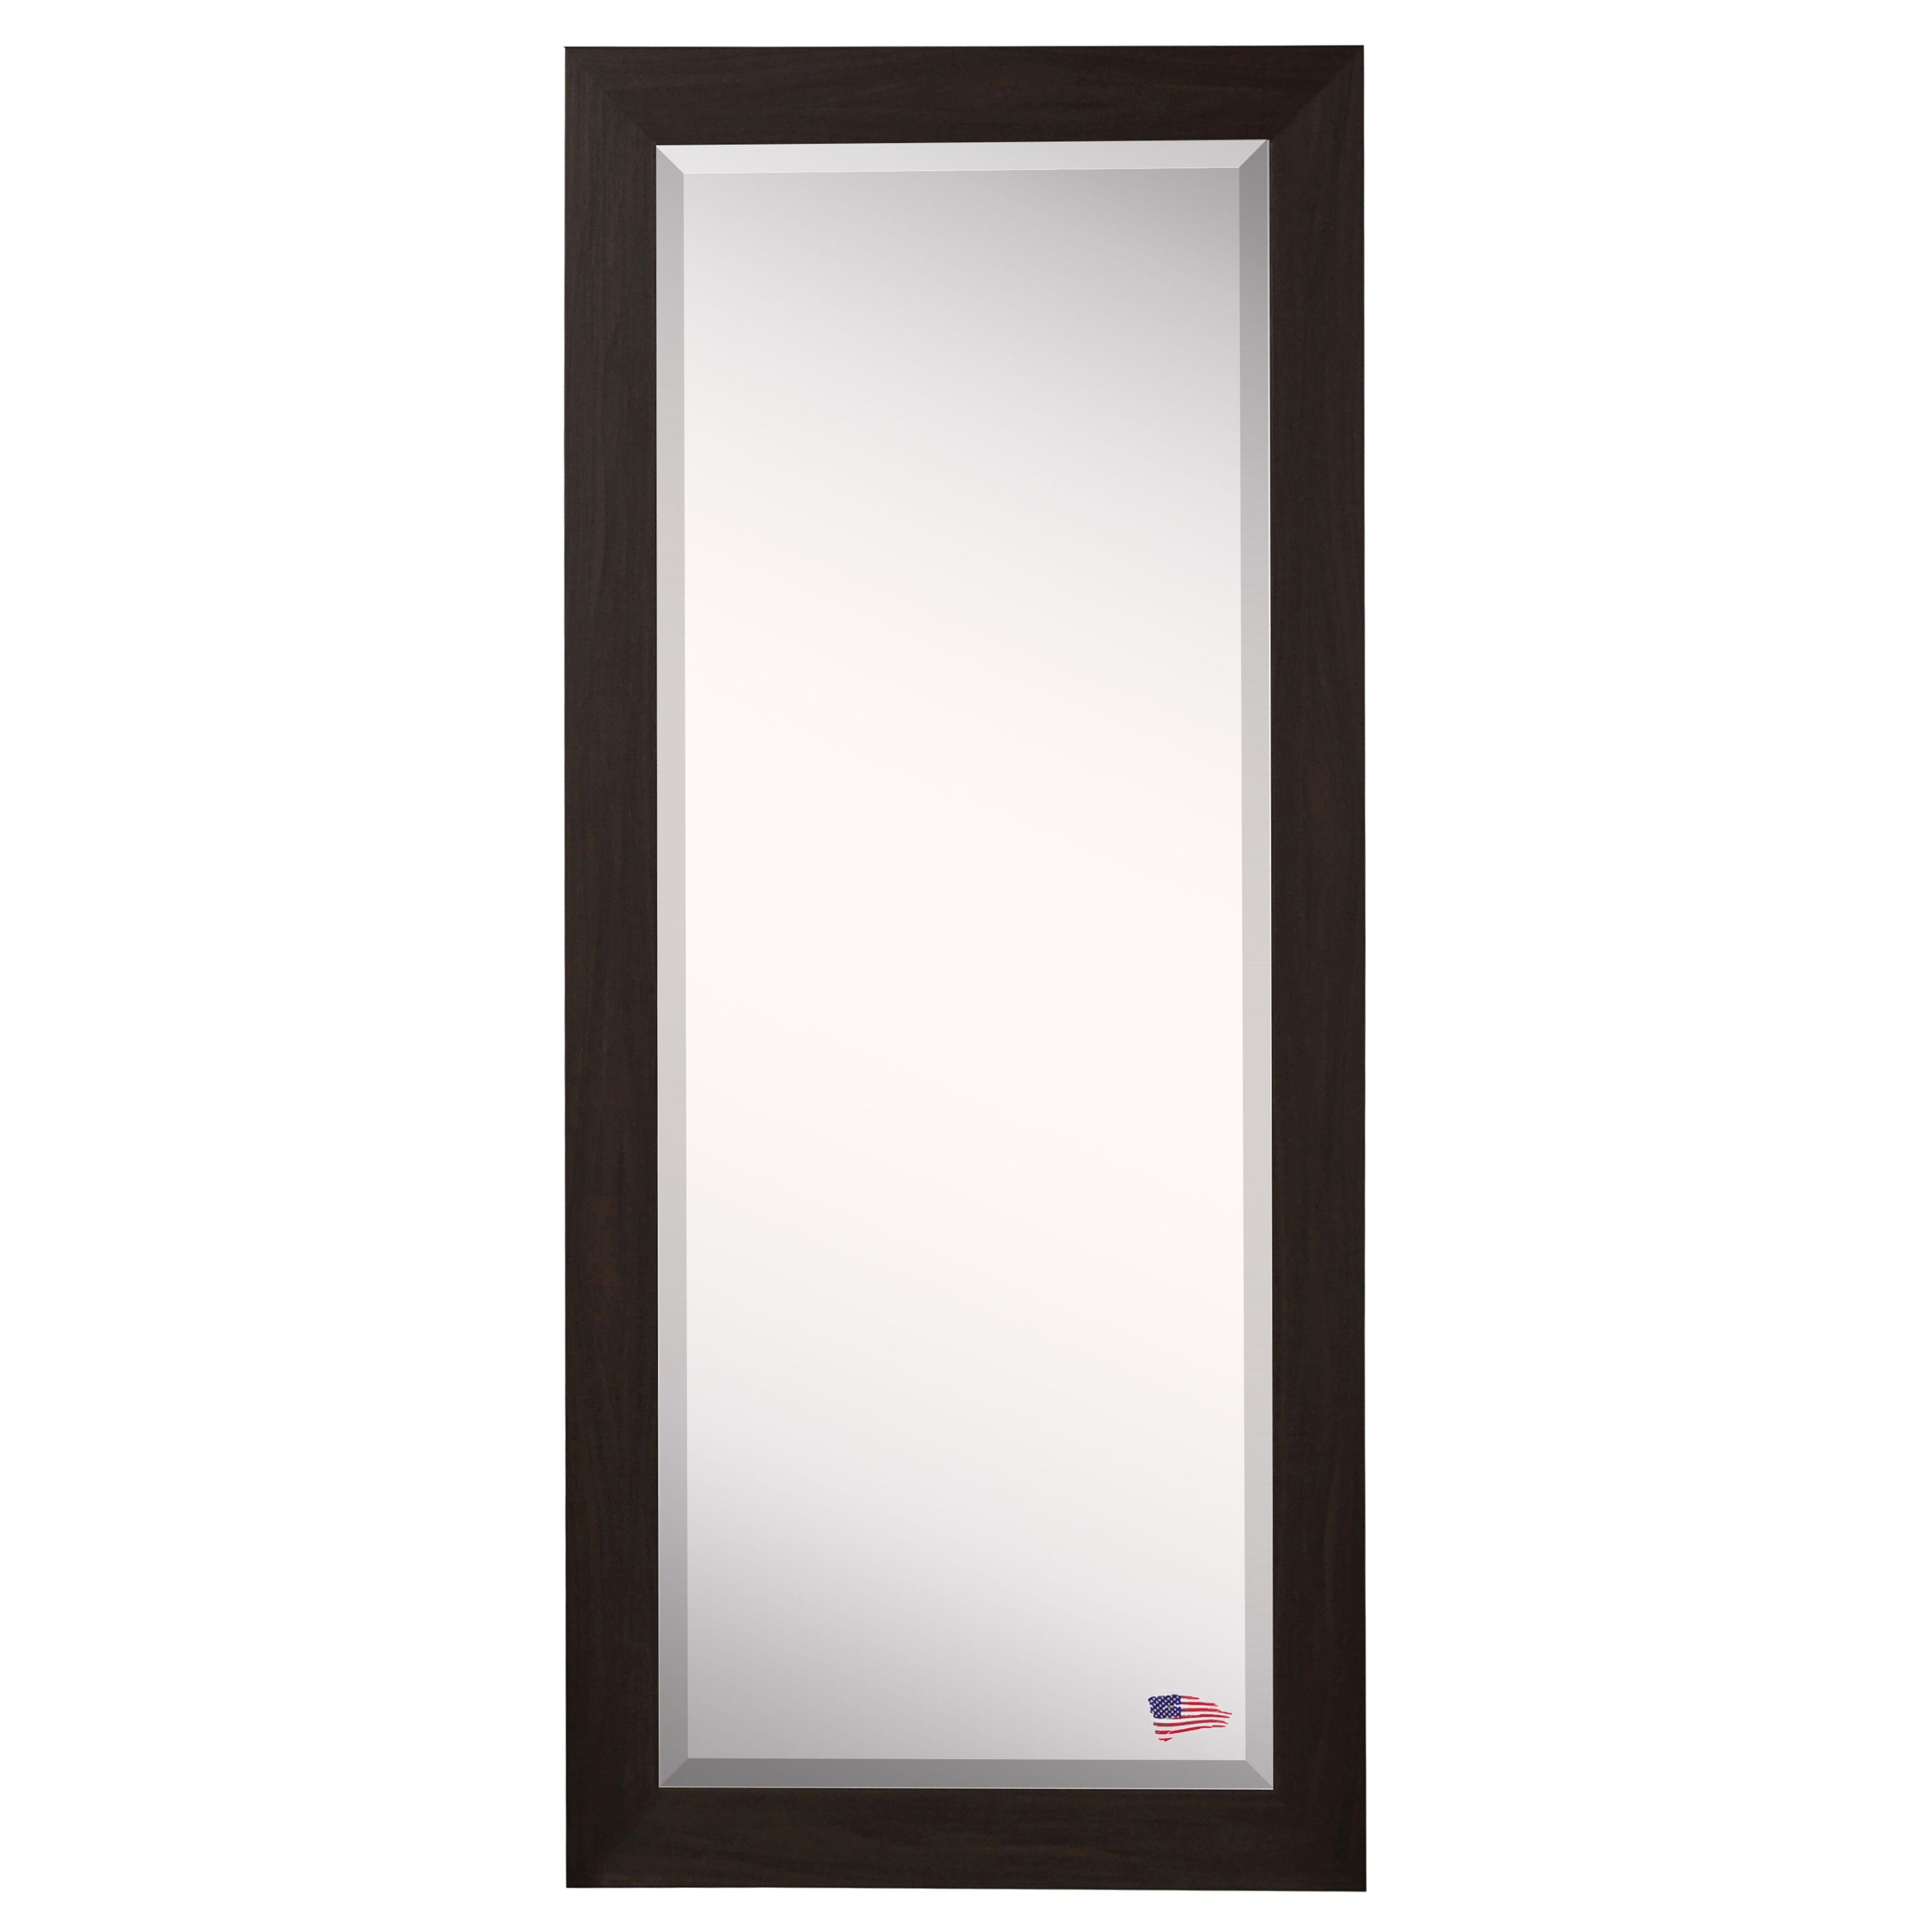 Darby home co extra tall floor mirror reviews wayfair for Tall glass mirror